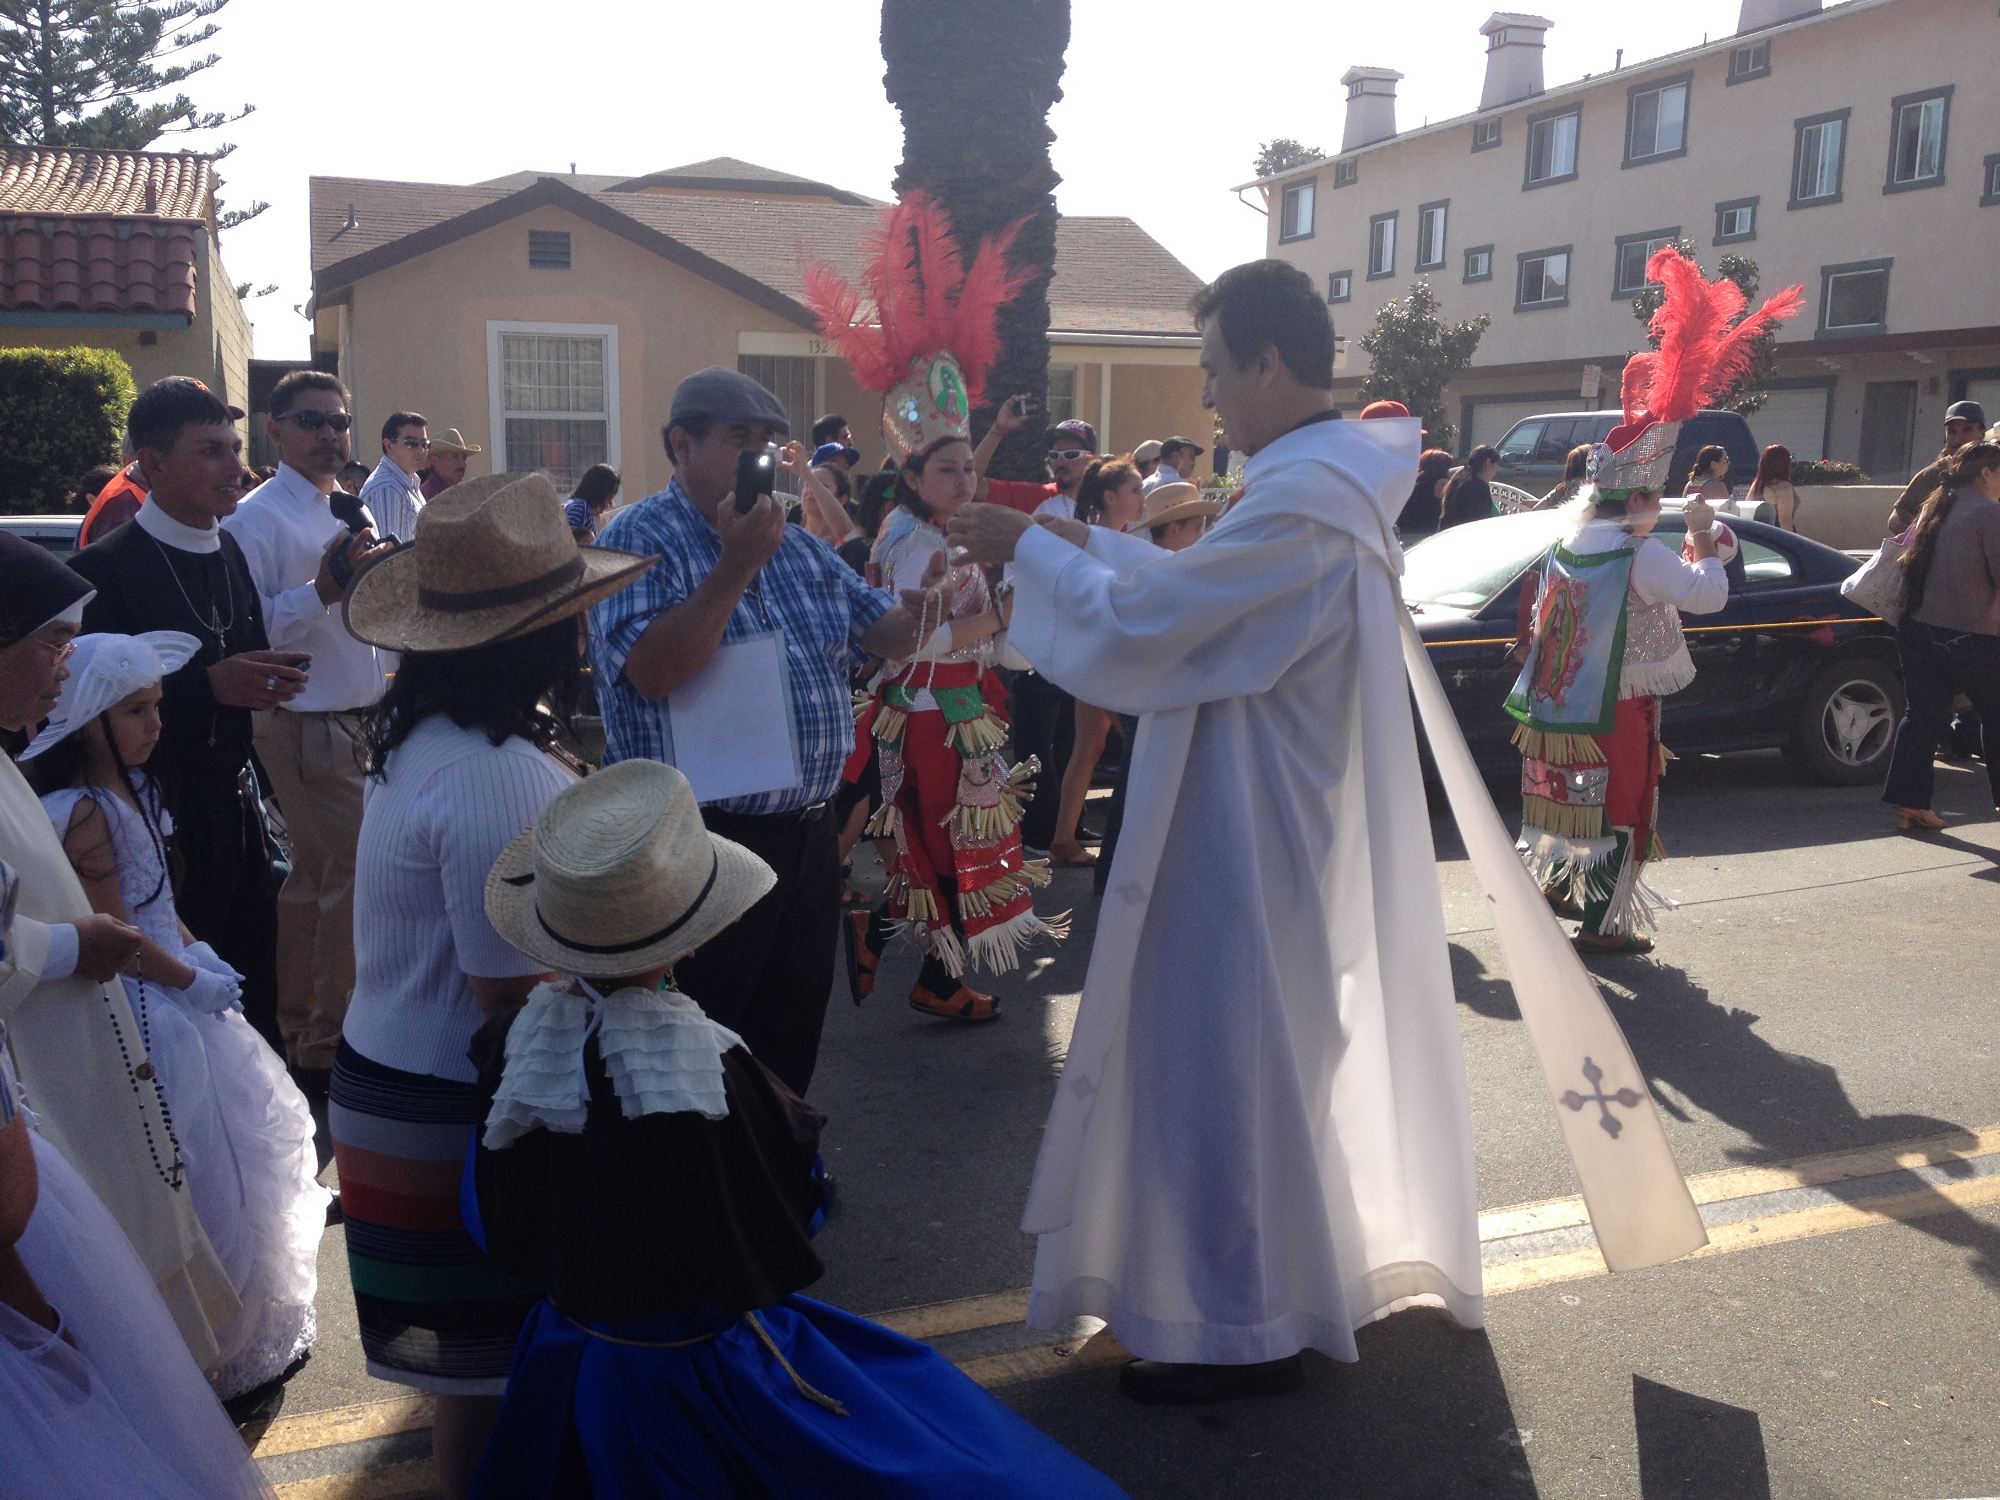 Padre Carlos blessing rosary beads at the procession of the Santo Niño de Atocha in Santa Paula, California.